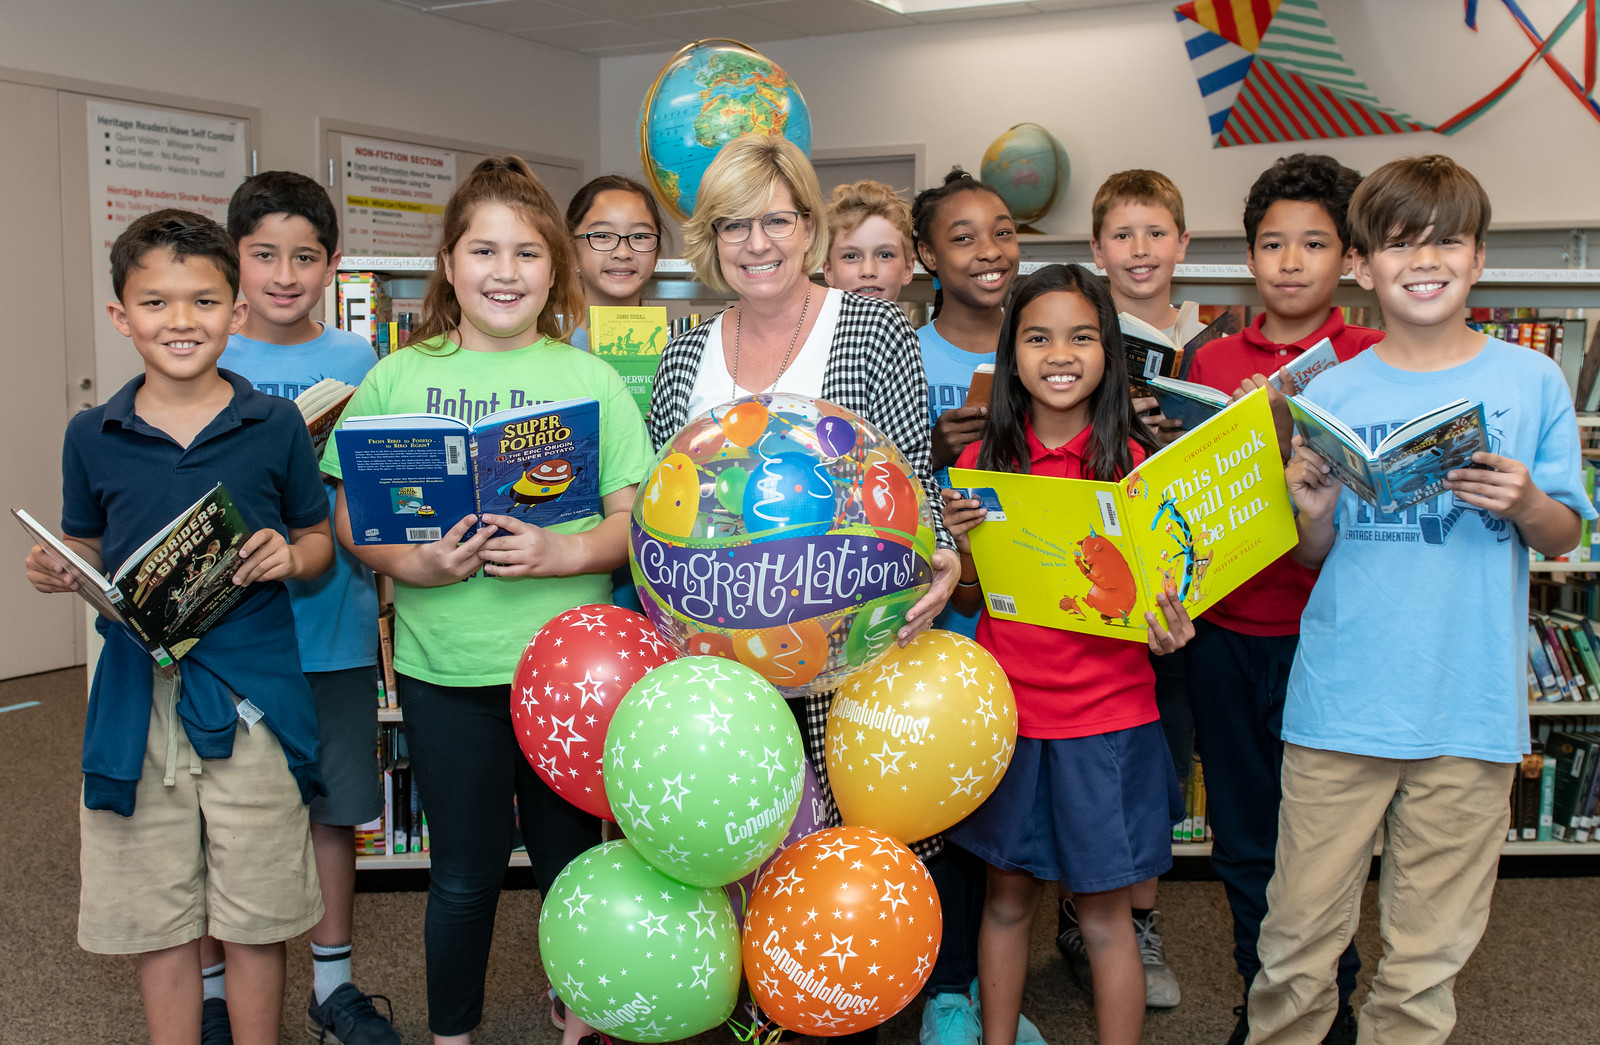 Honour Del Crognale holding balloons surrounded by students in the school library